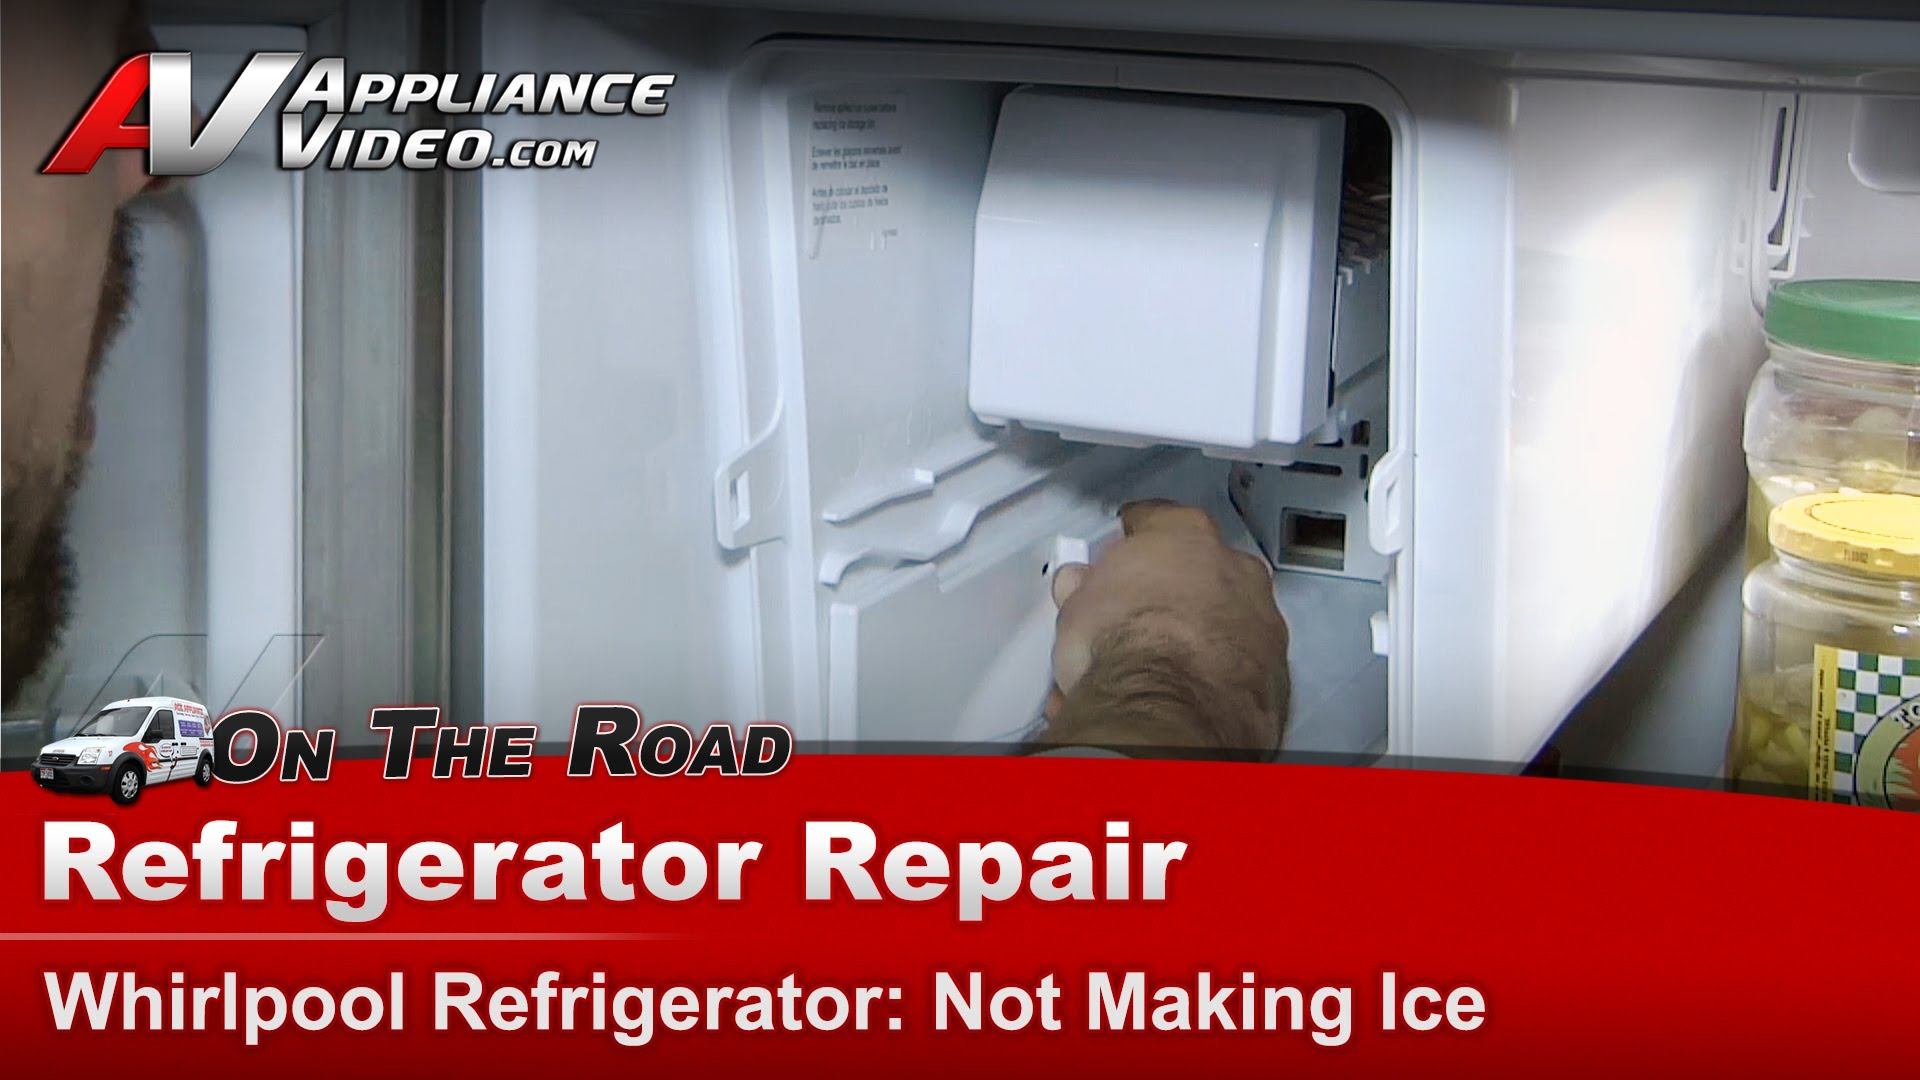 hight resolution of whirlpool gz25fsrxyy5 refrigerator repair not making ice ice maker appliance video